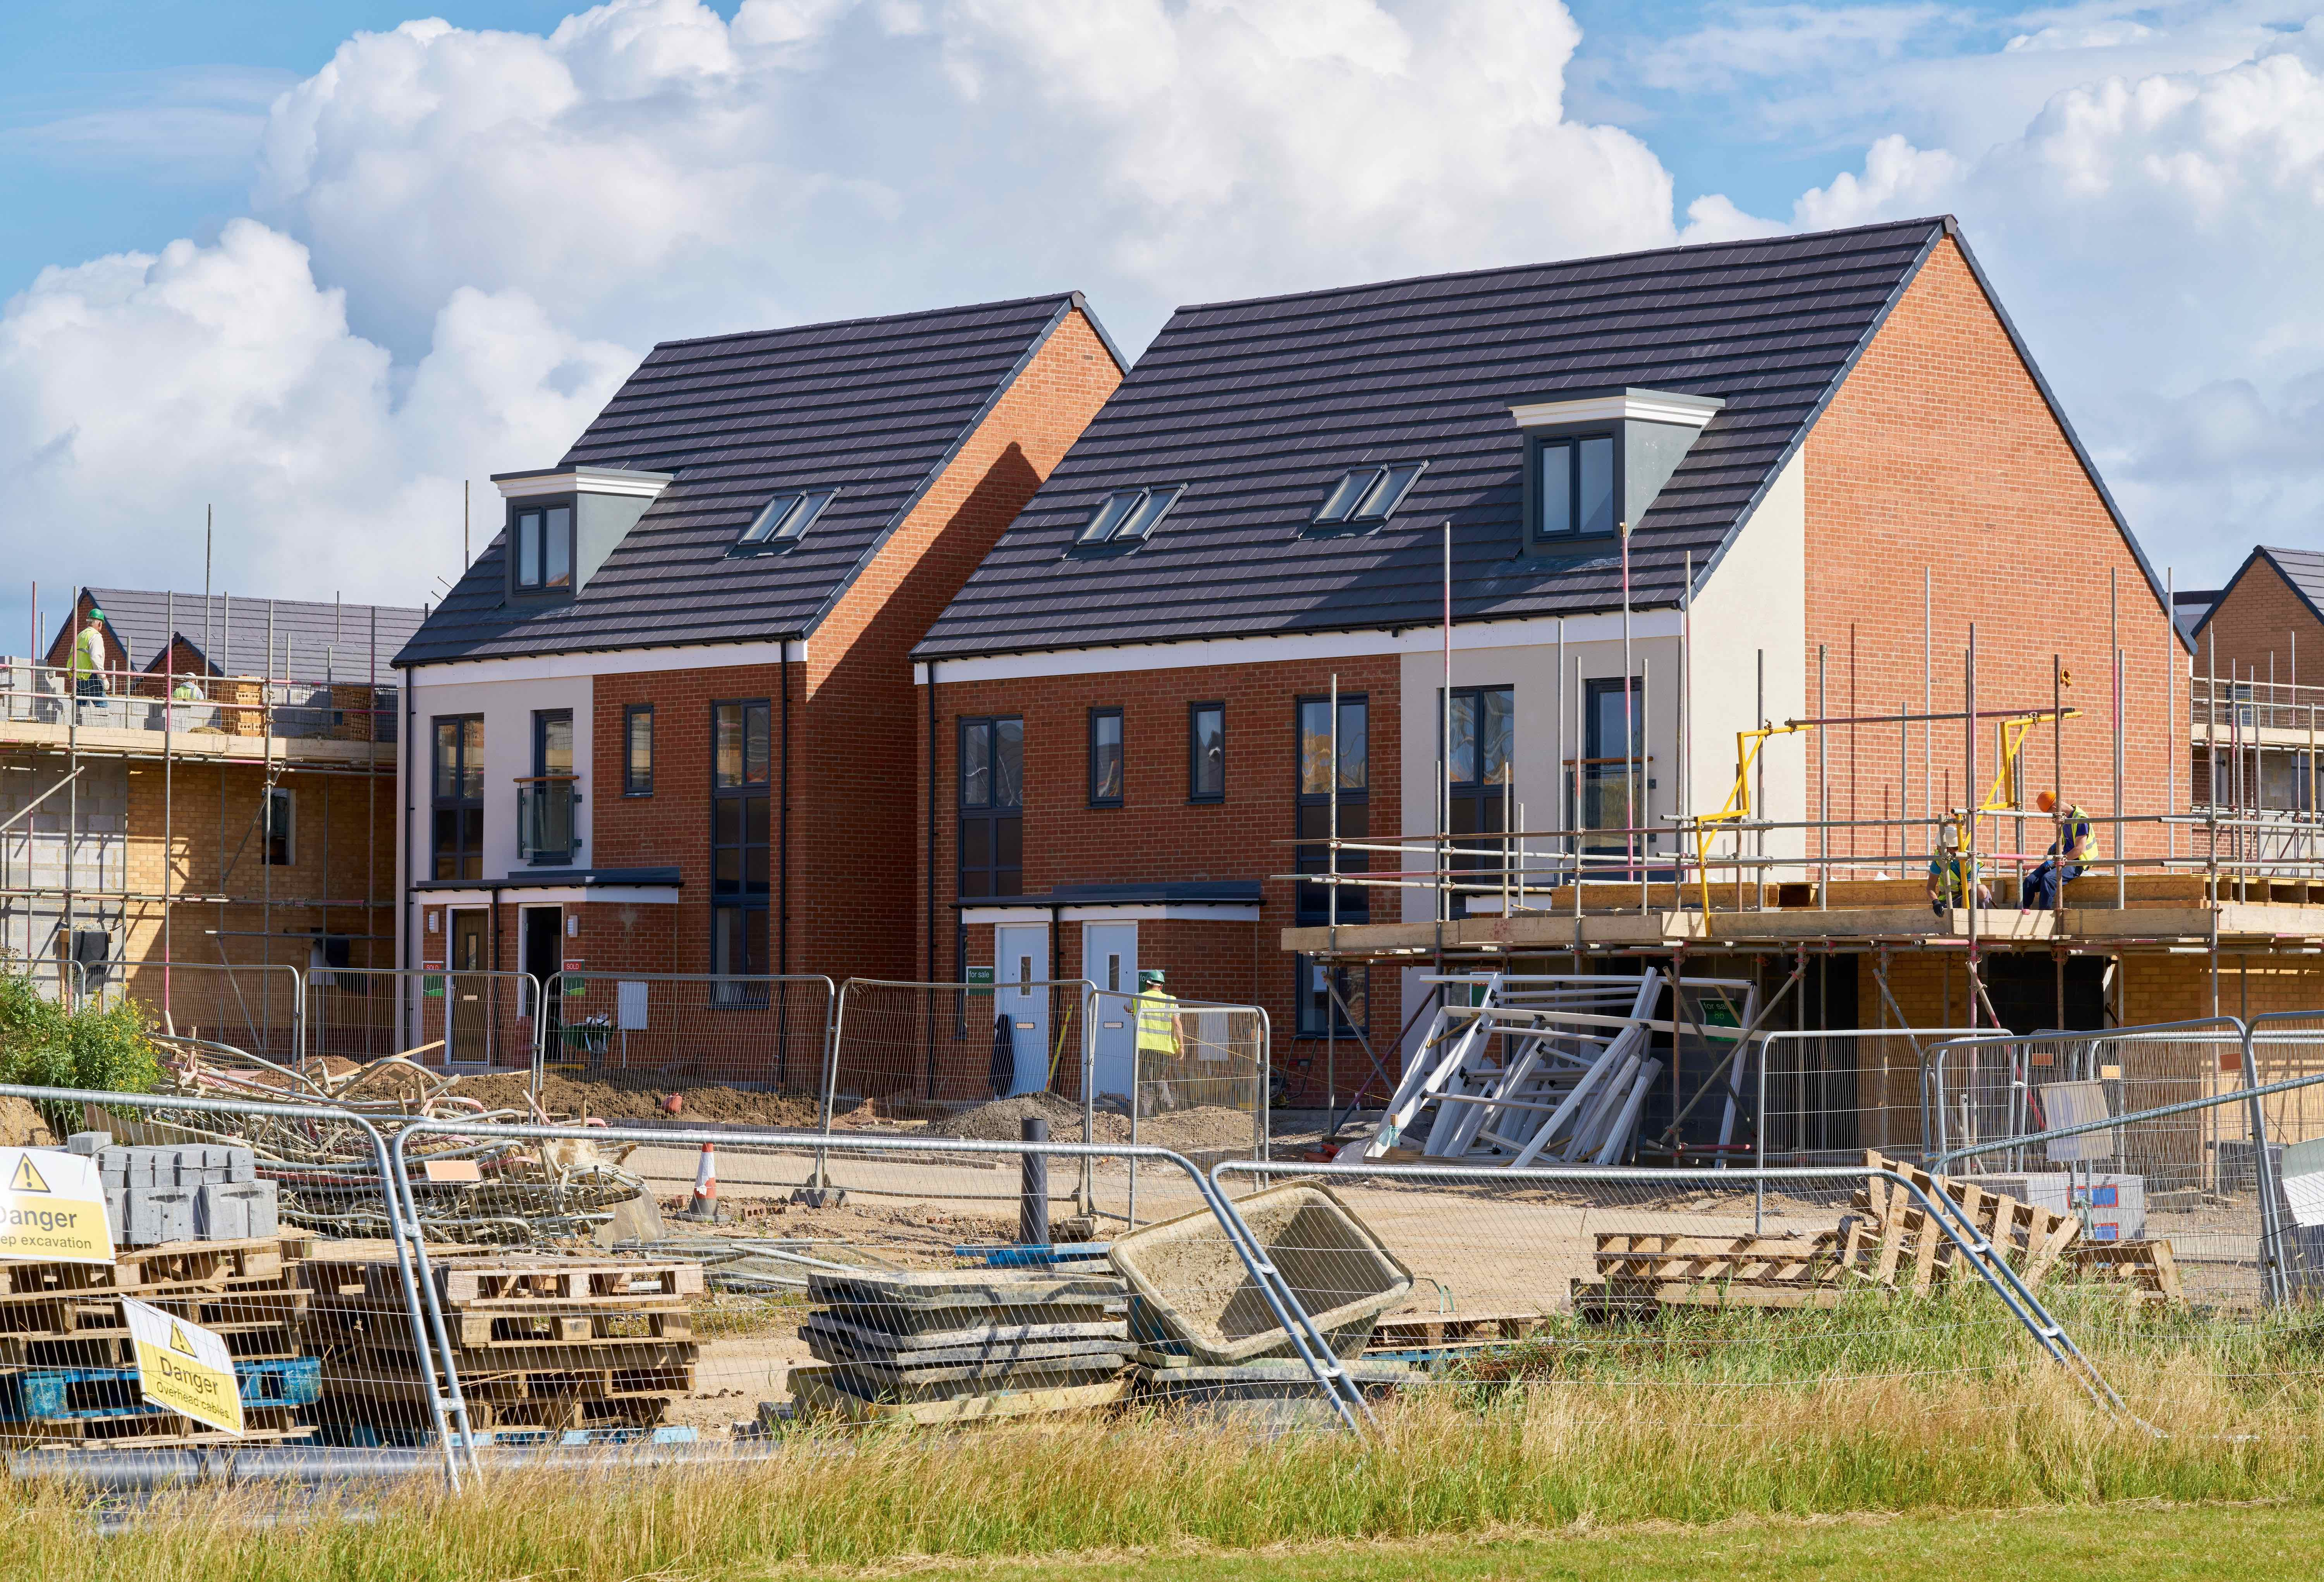 The challenges of complying with new-build energy regulations